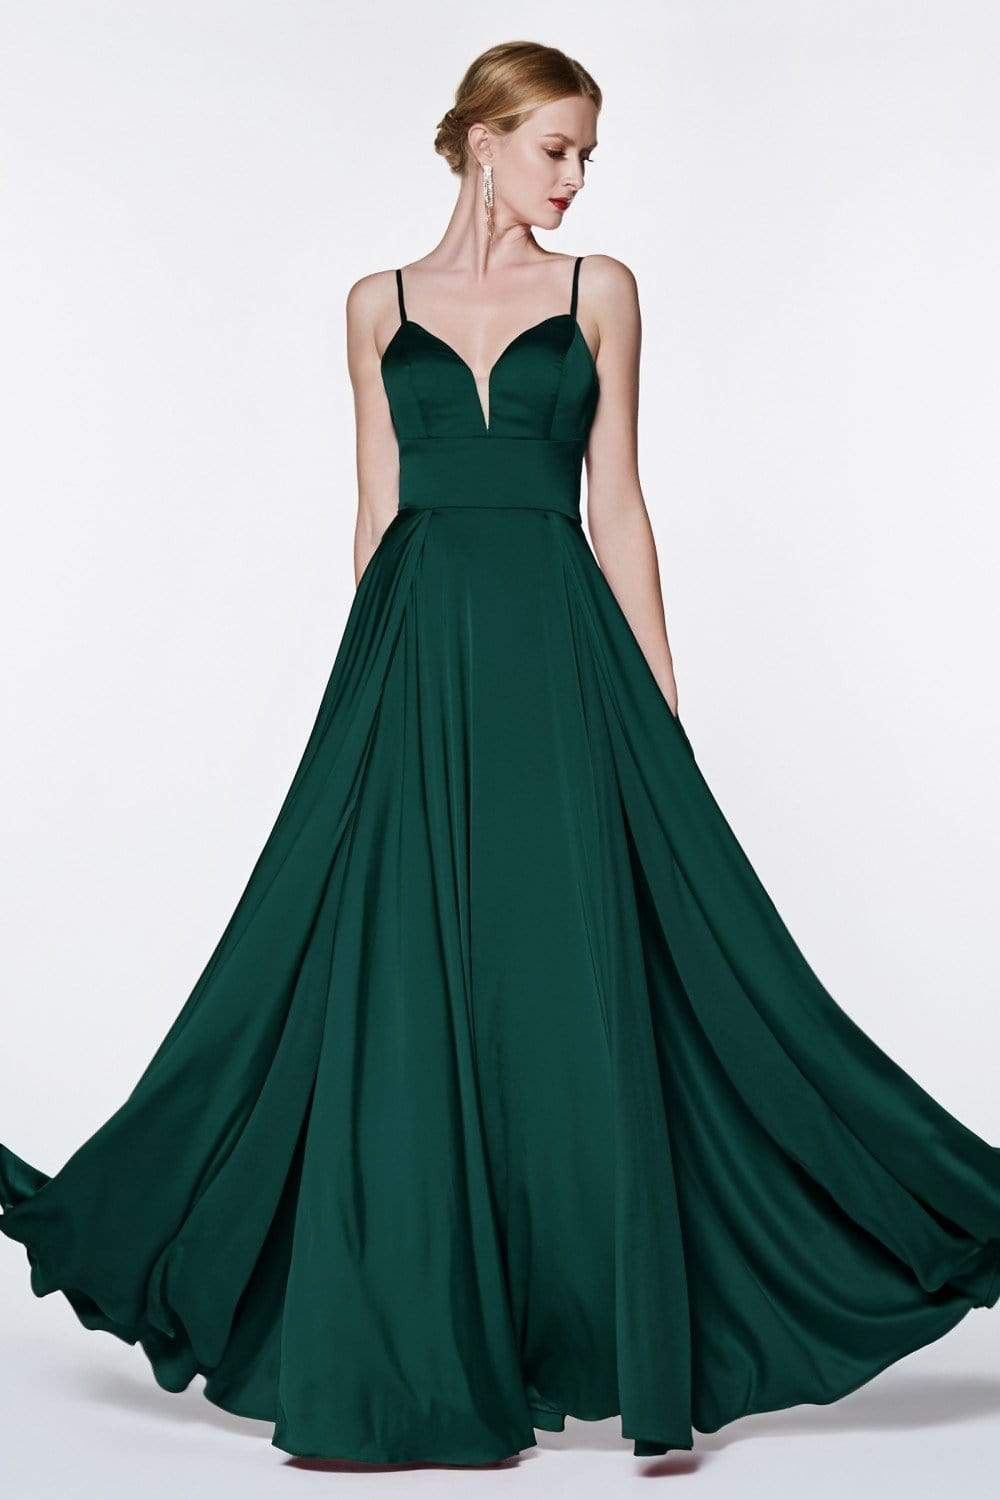 Cinderella Divine - CJ526 Sheer Plunging Neck Double Slit Satin Gown Special Occasion Dress 2 / Emerald